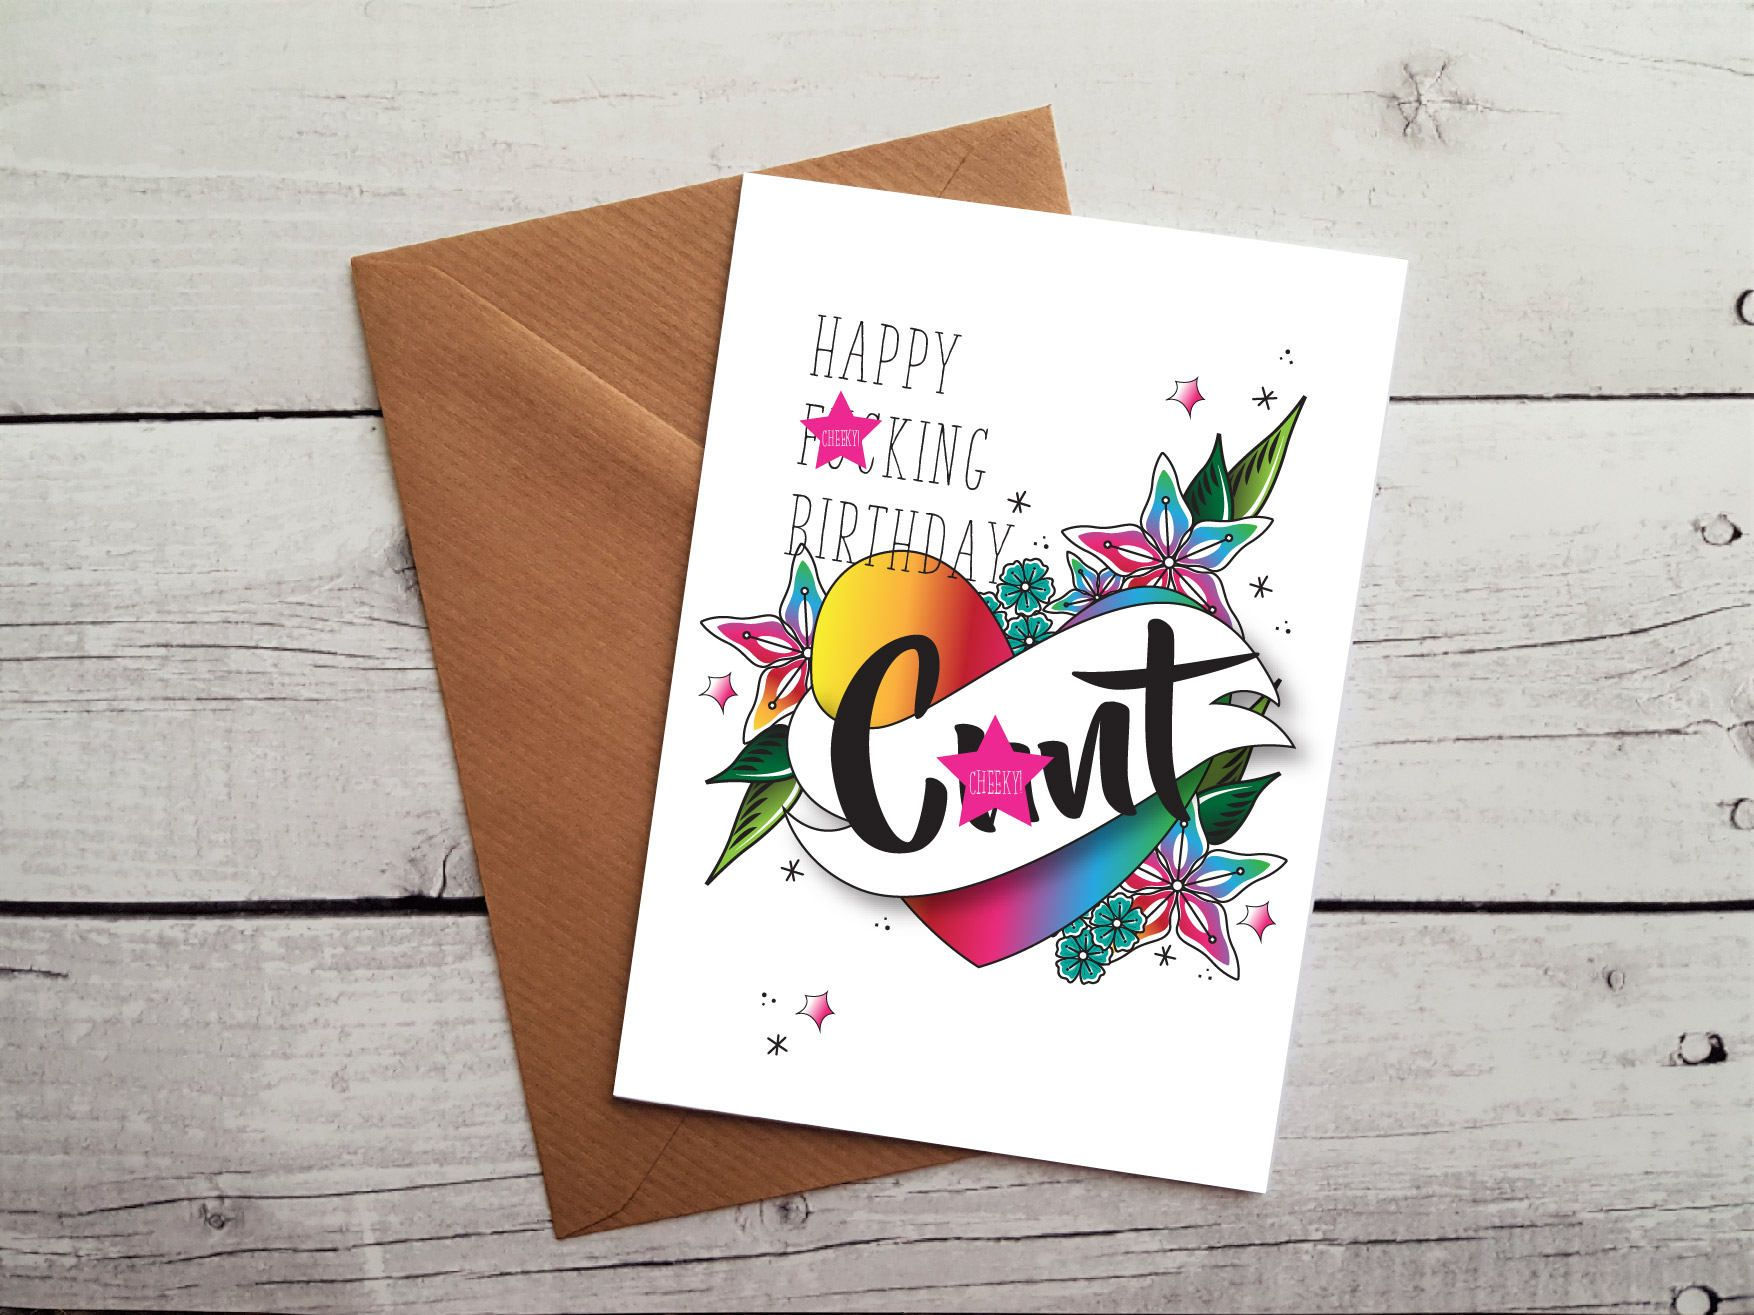 Funny Birthday Card For Friend Swearing Hilarious Cards Naughty MATURE WORLDWIDE SHIPPING